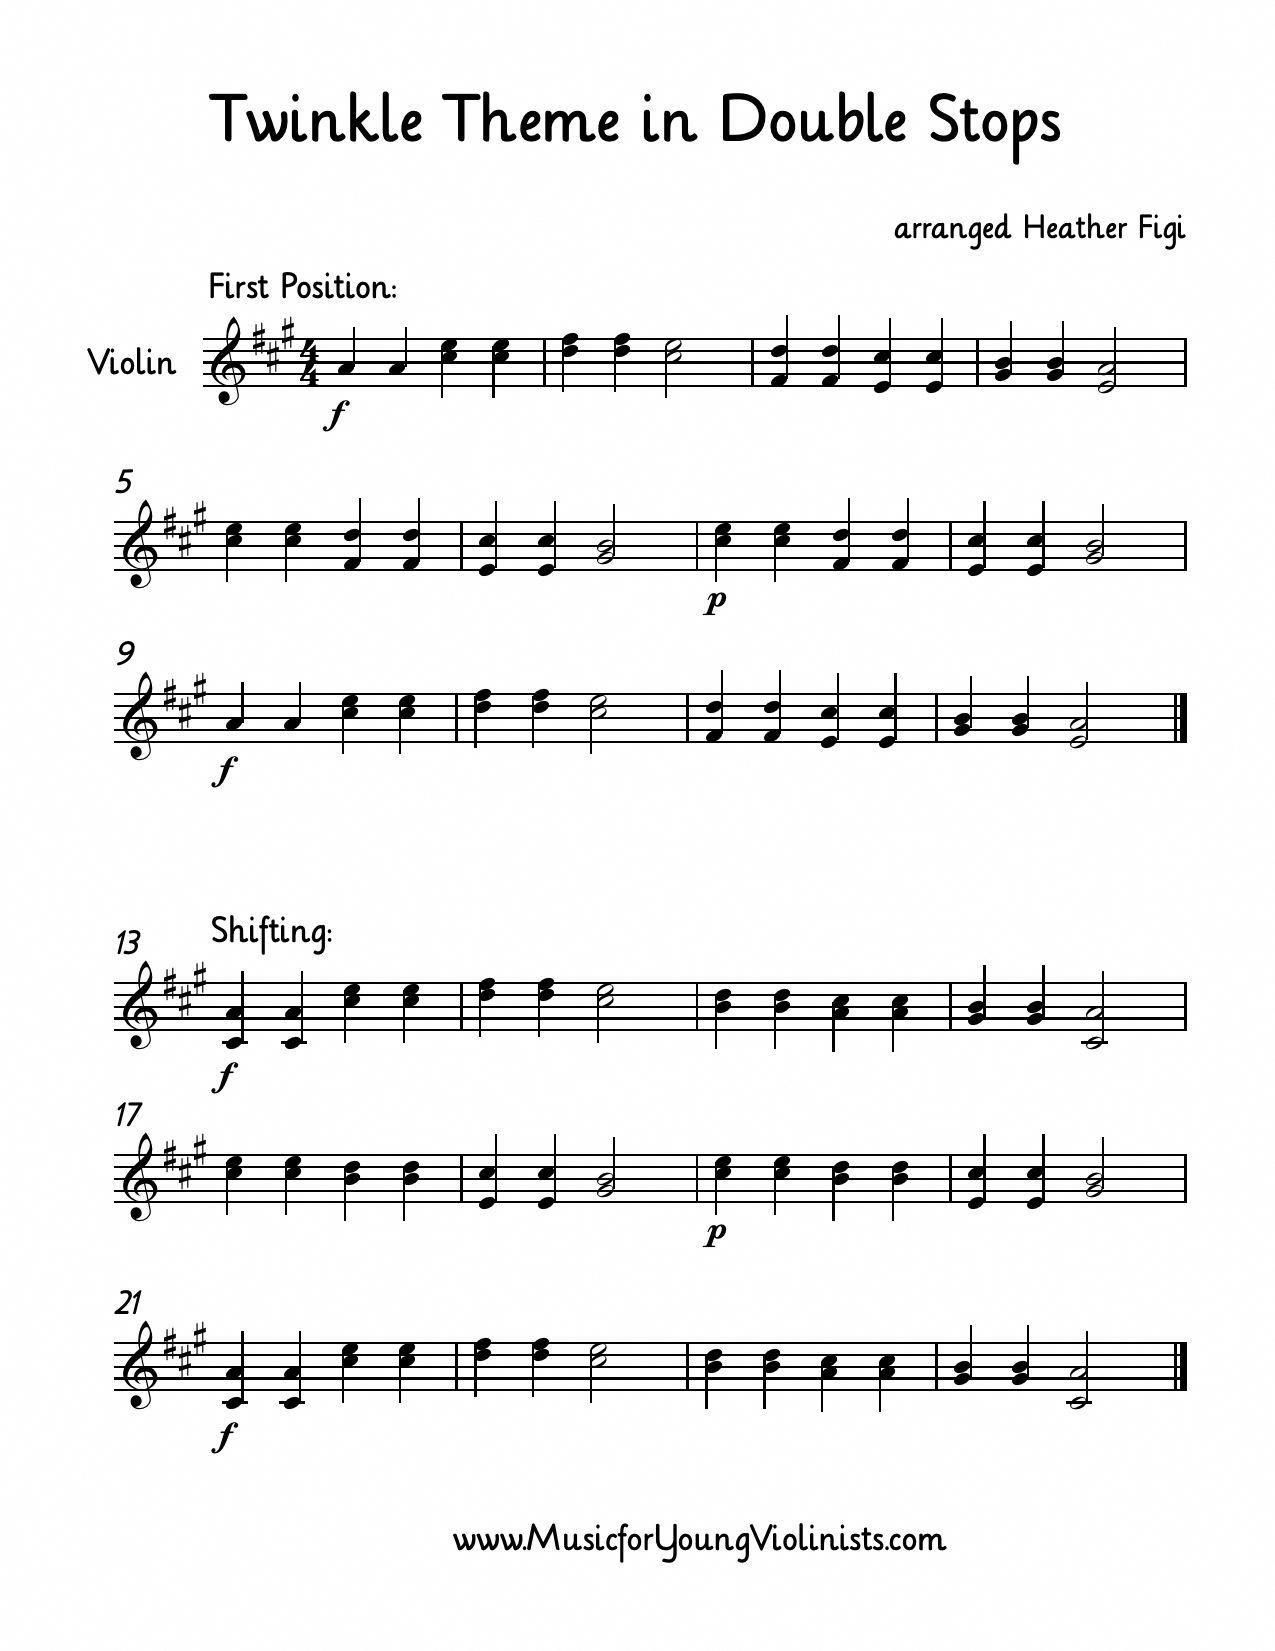 Free Sheet Music Violin Twinkle Theme Arranged With Double Stops First Position And Shifting It Is Import Violin Beginner Learn Piano Online Piano Lessons How do you read violin music